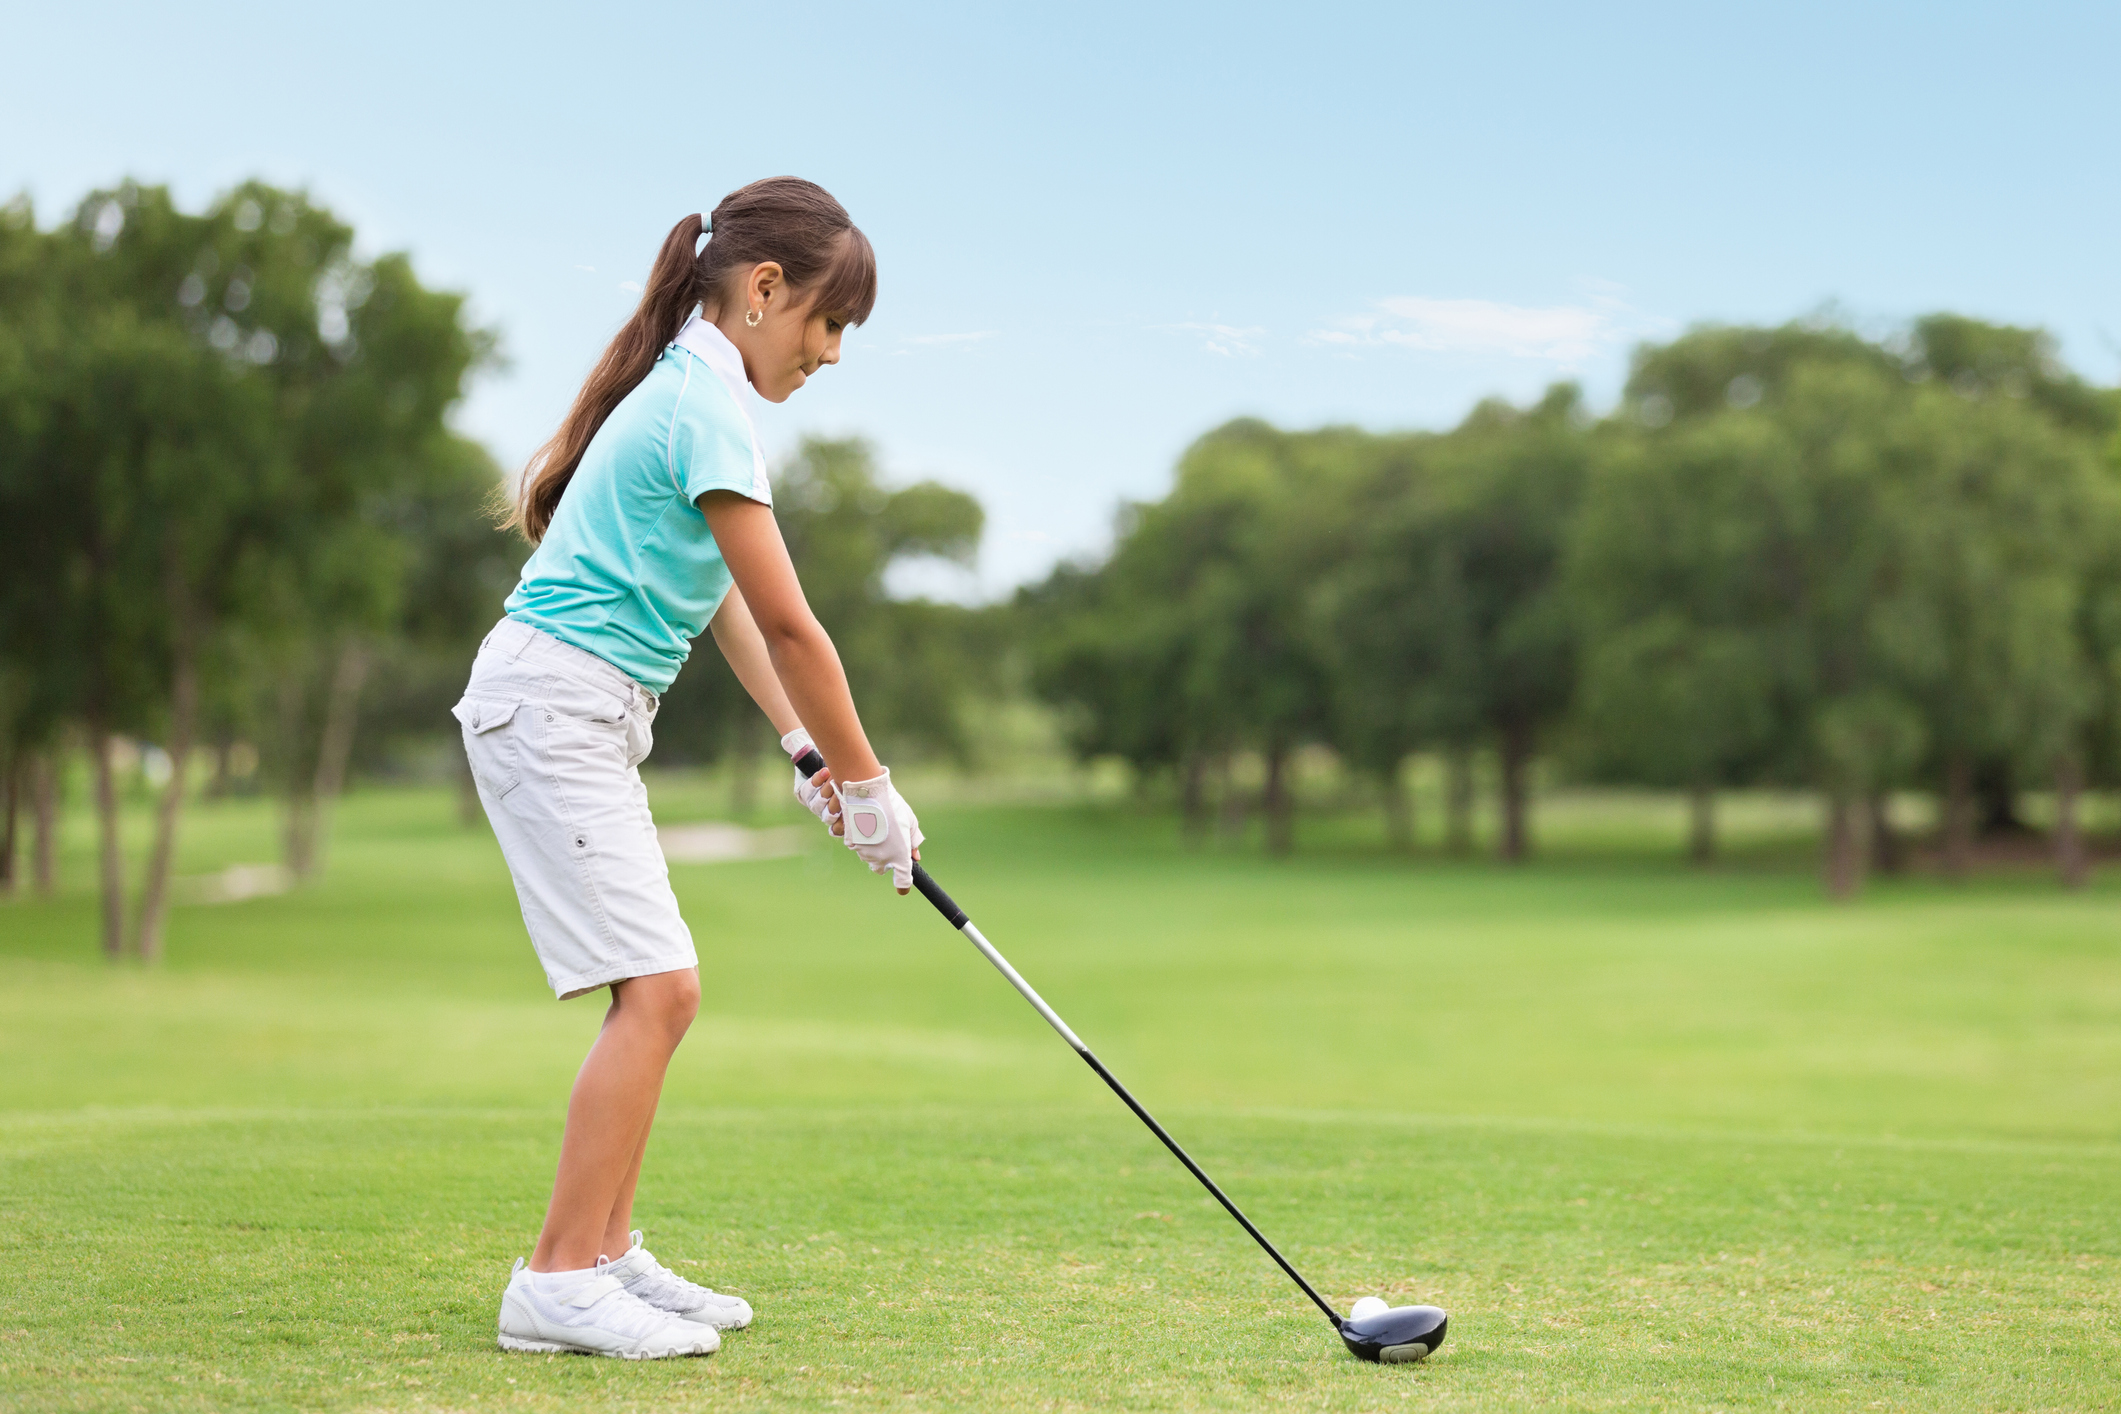 Golf Injuries in Youth